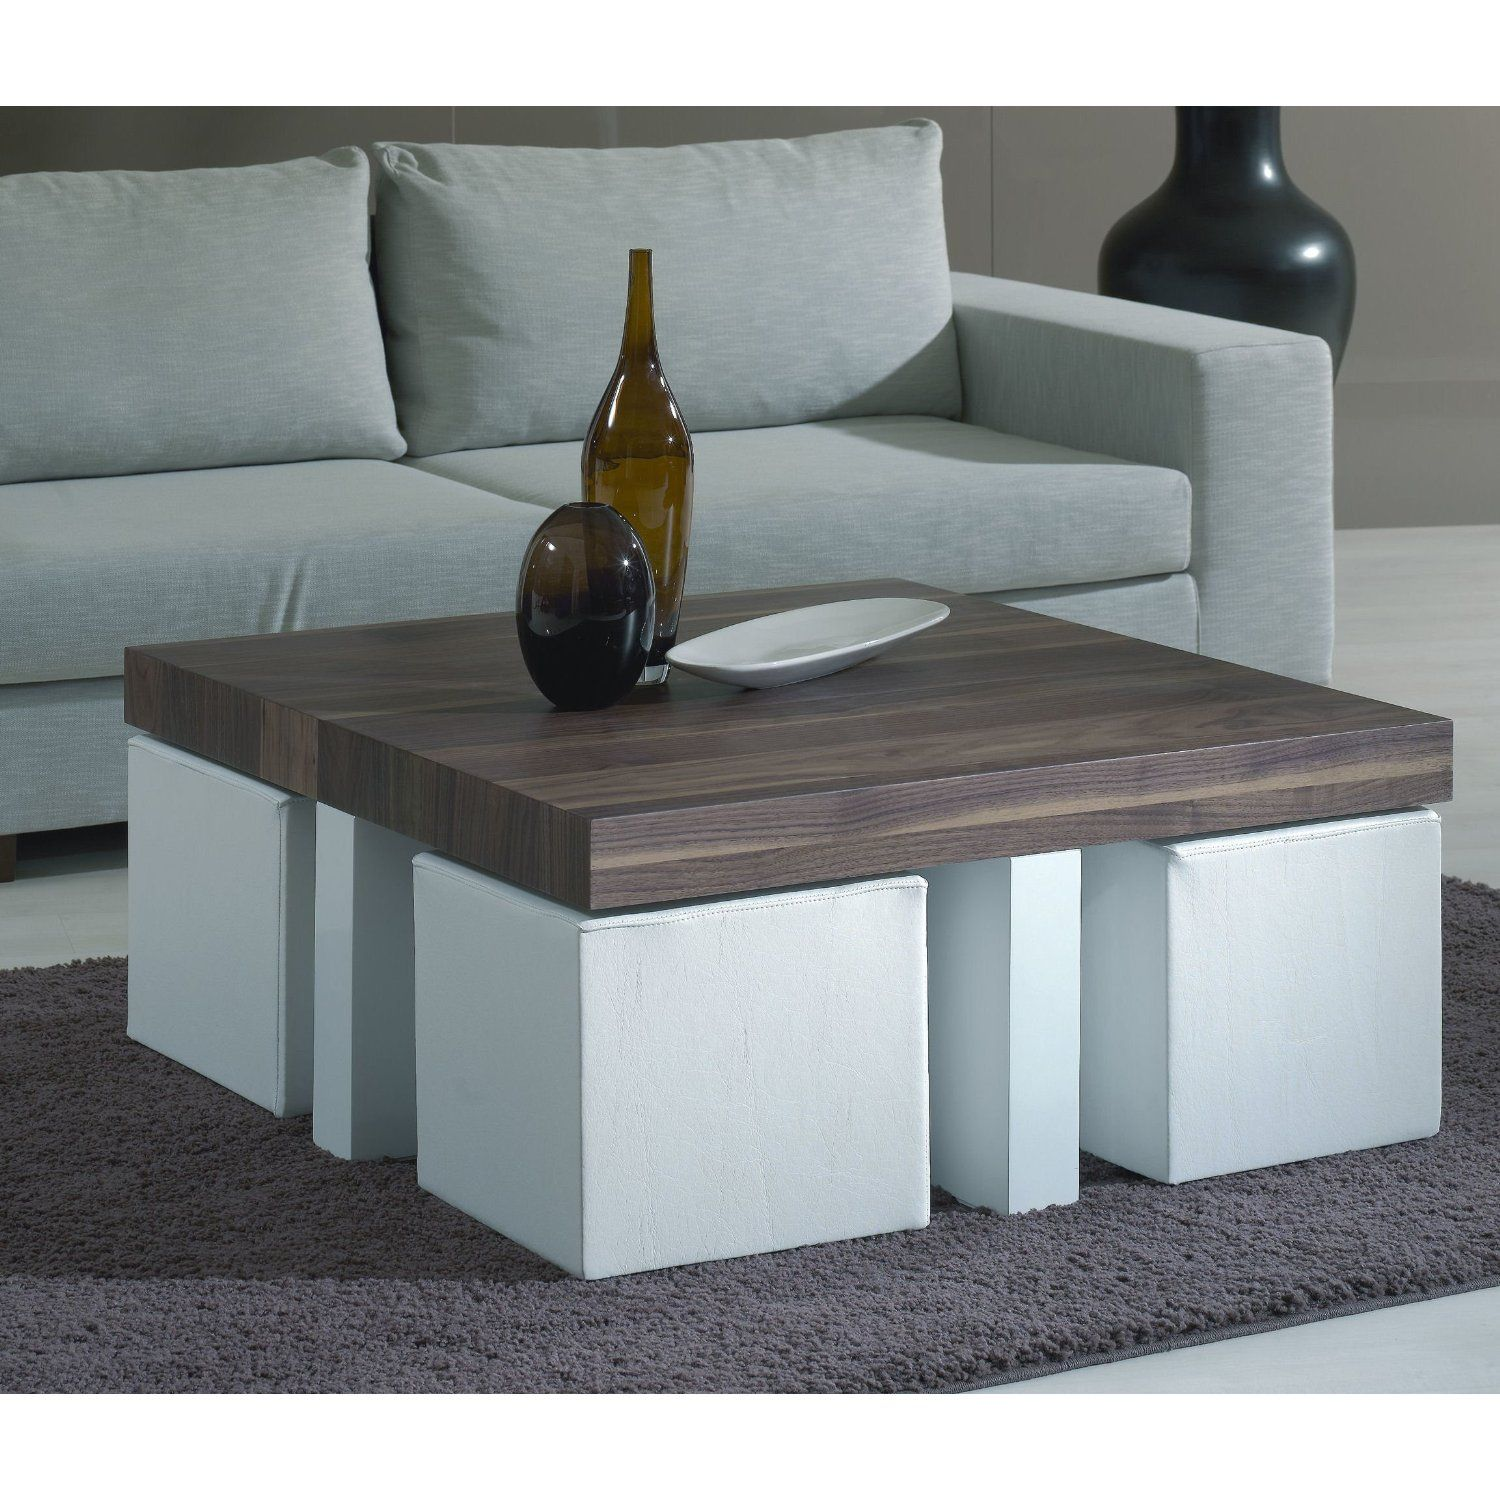 coffee table with stools Coffee table with stools    love this idea for stools tucked under  coffee table with stools